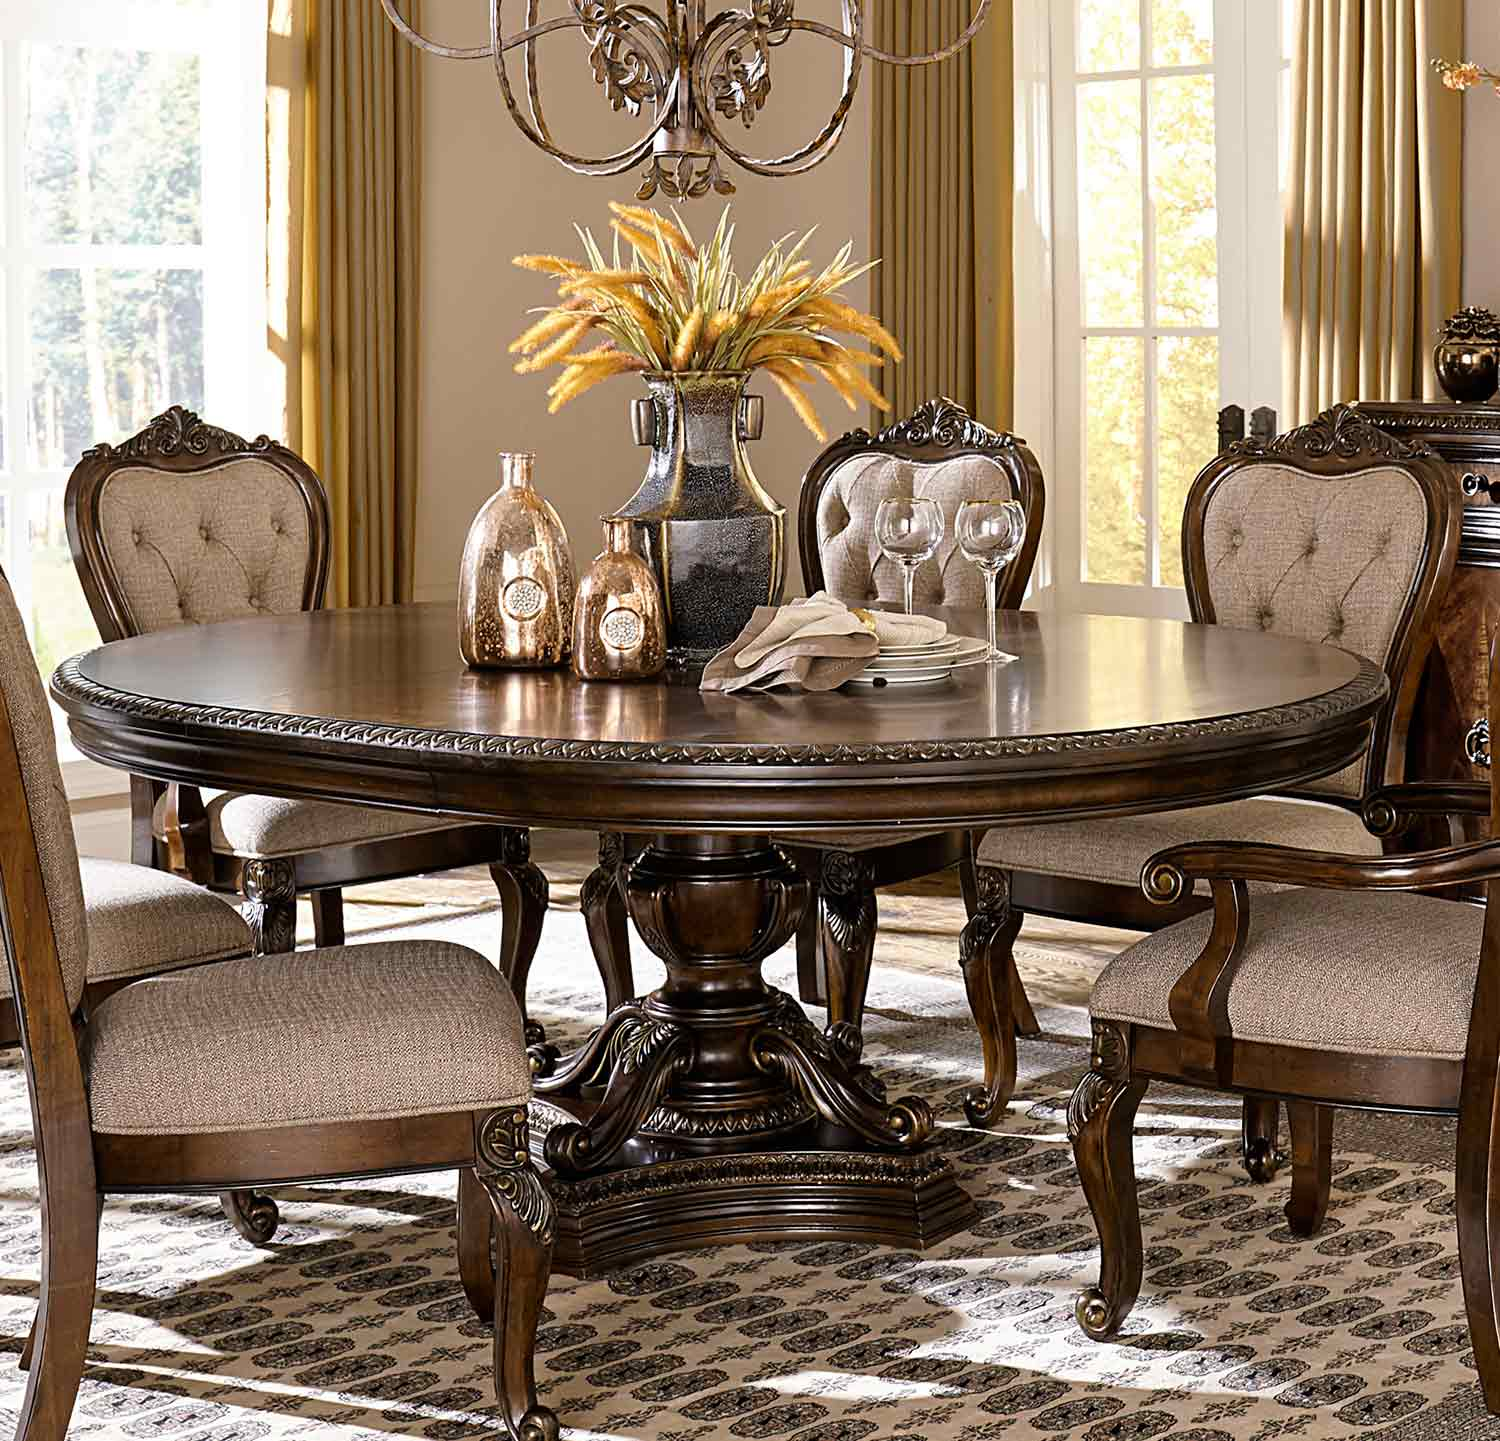 Homelegance Bonaventure Park Round / Oval Pedestal Dining Table with Leaf - Gold-Highlighted Cherry